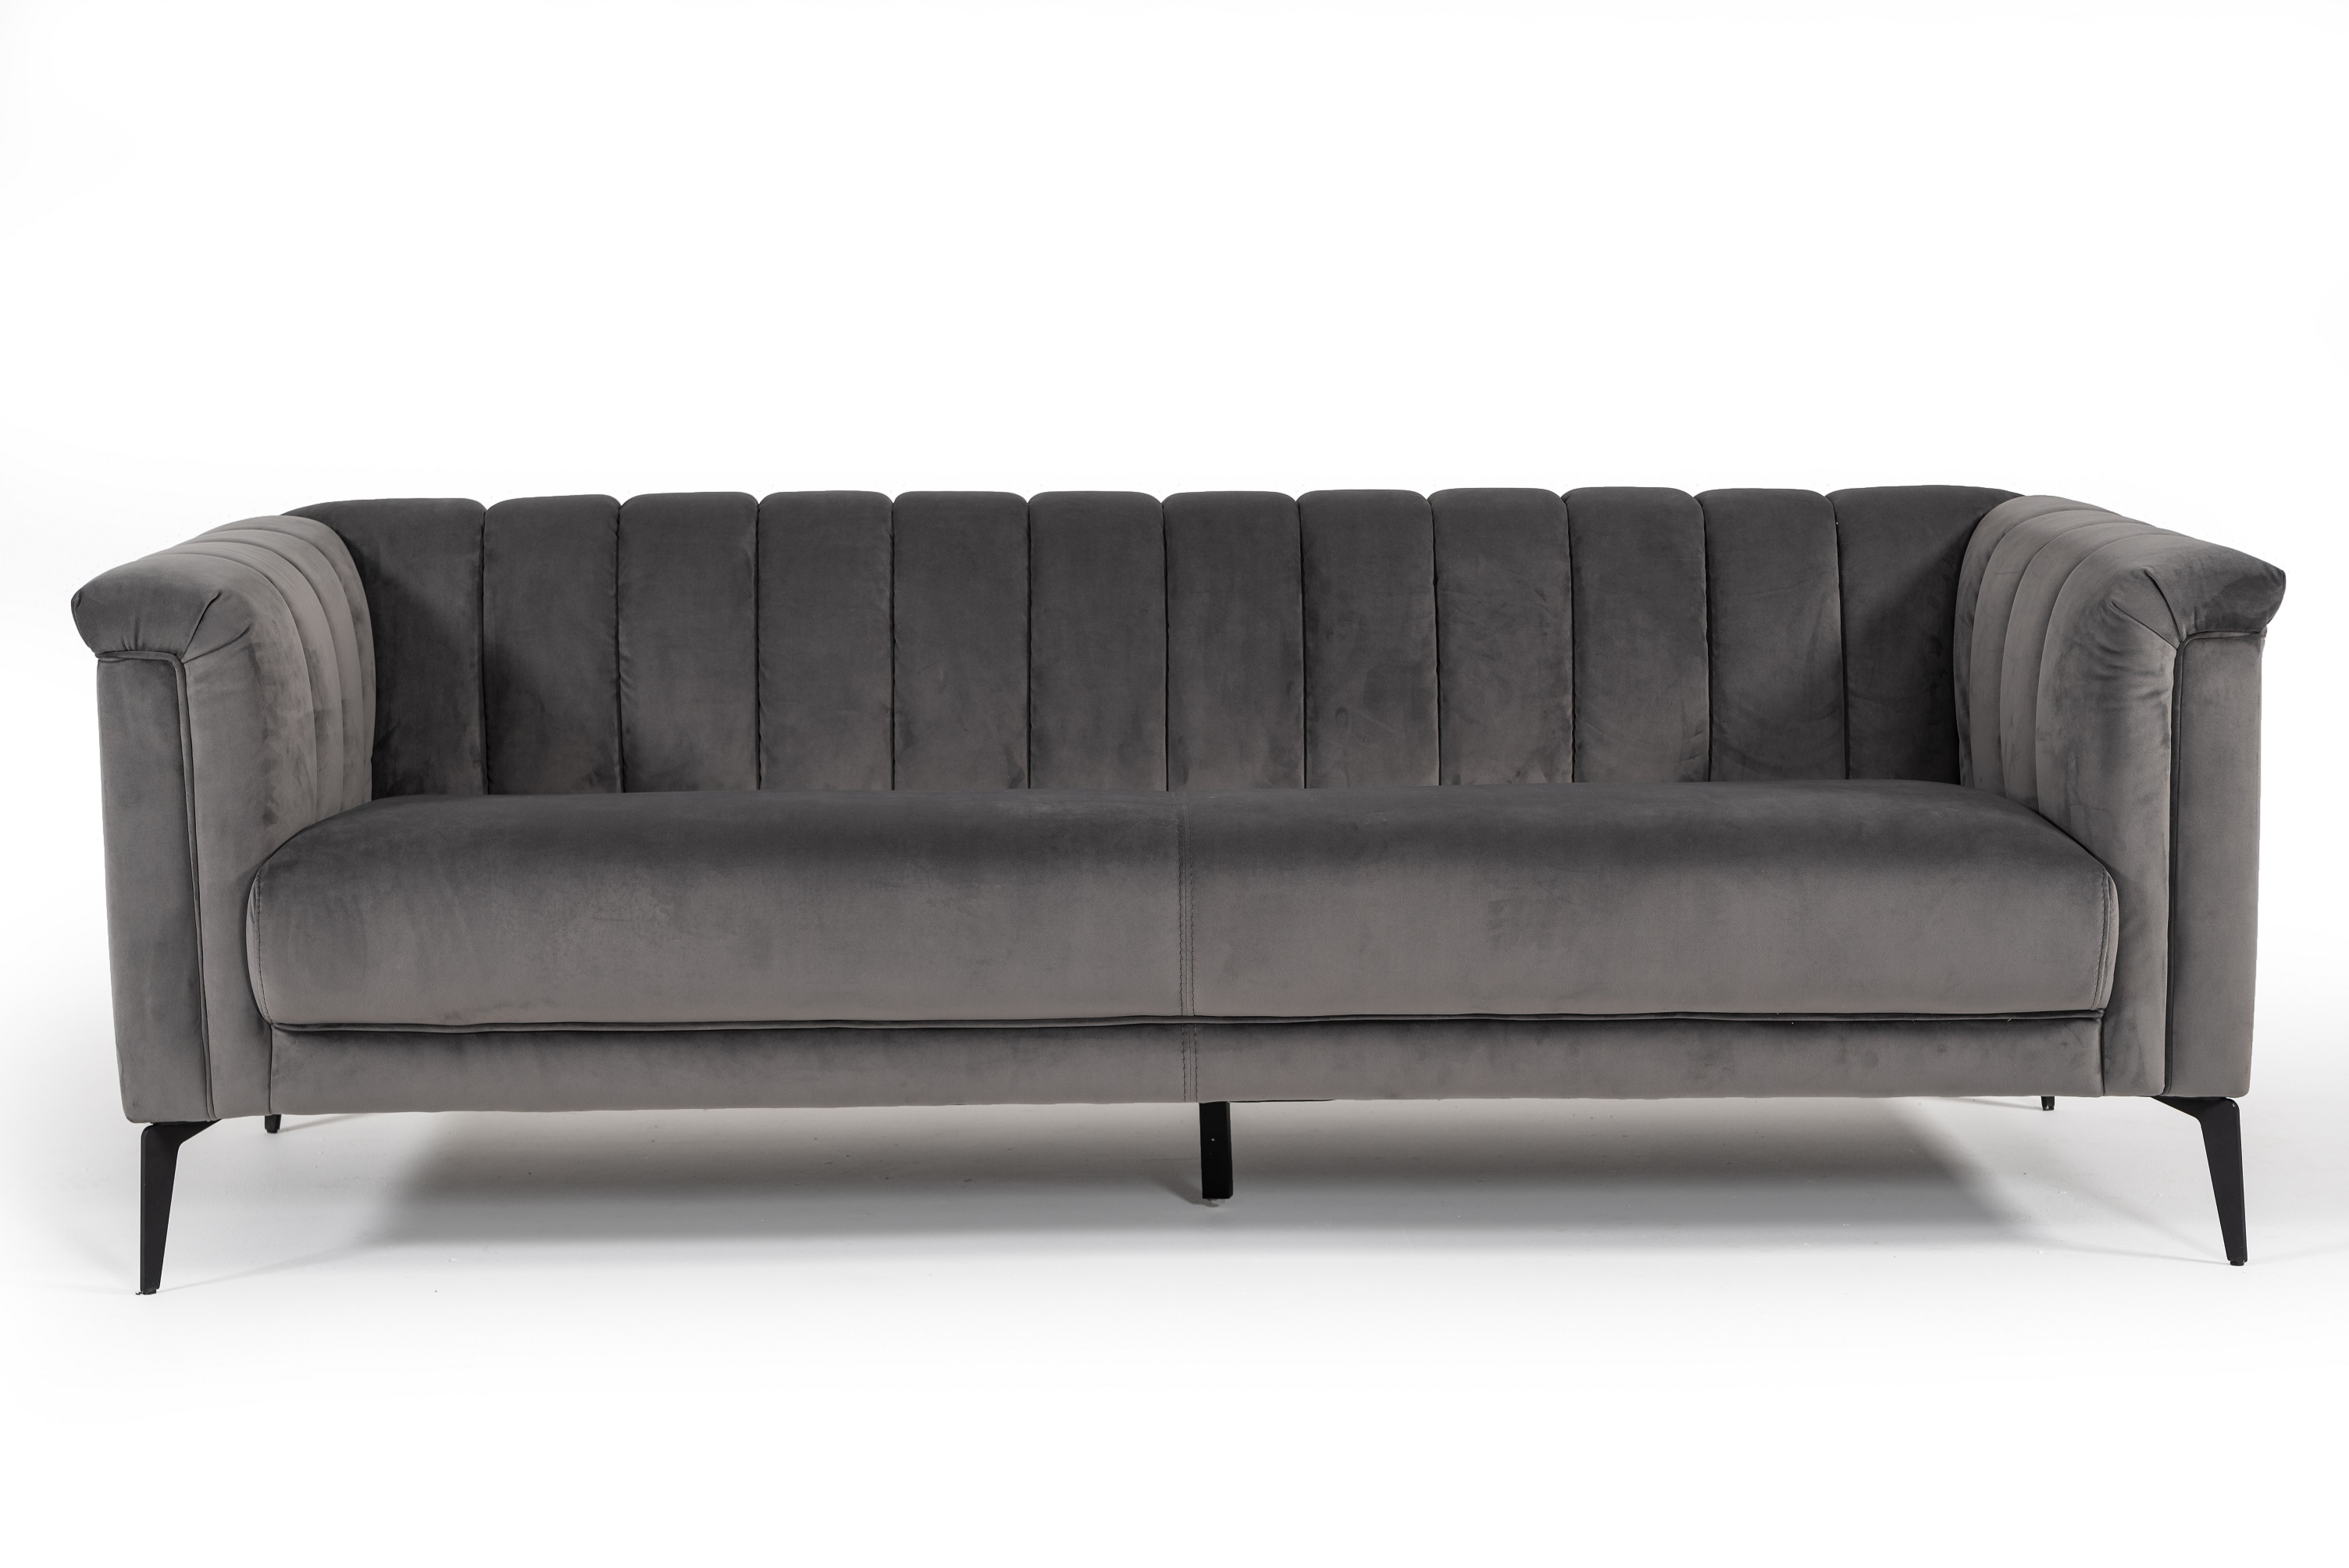 VIG Furniture Divani Casa Jeremy Modern Grey Velvet Sofa